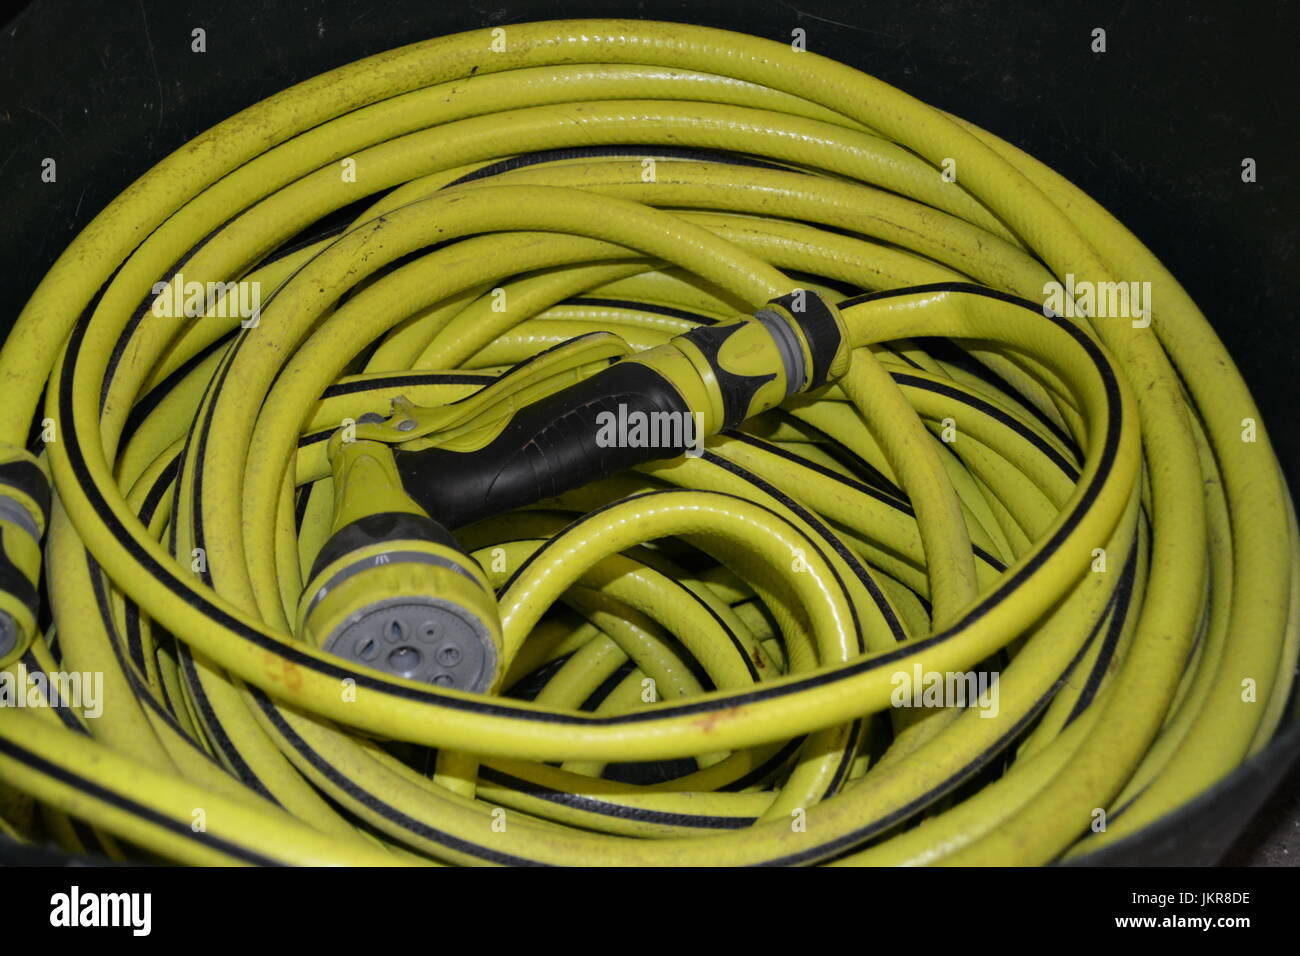 Close up of long length coiled hose hosepipe with multi spray hose gun watering nozzle attachment re watering the - Stock Image